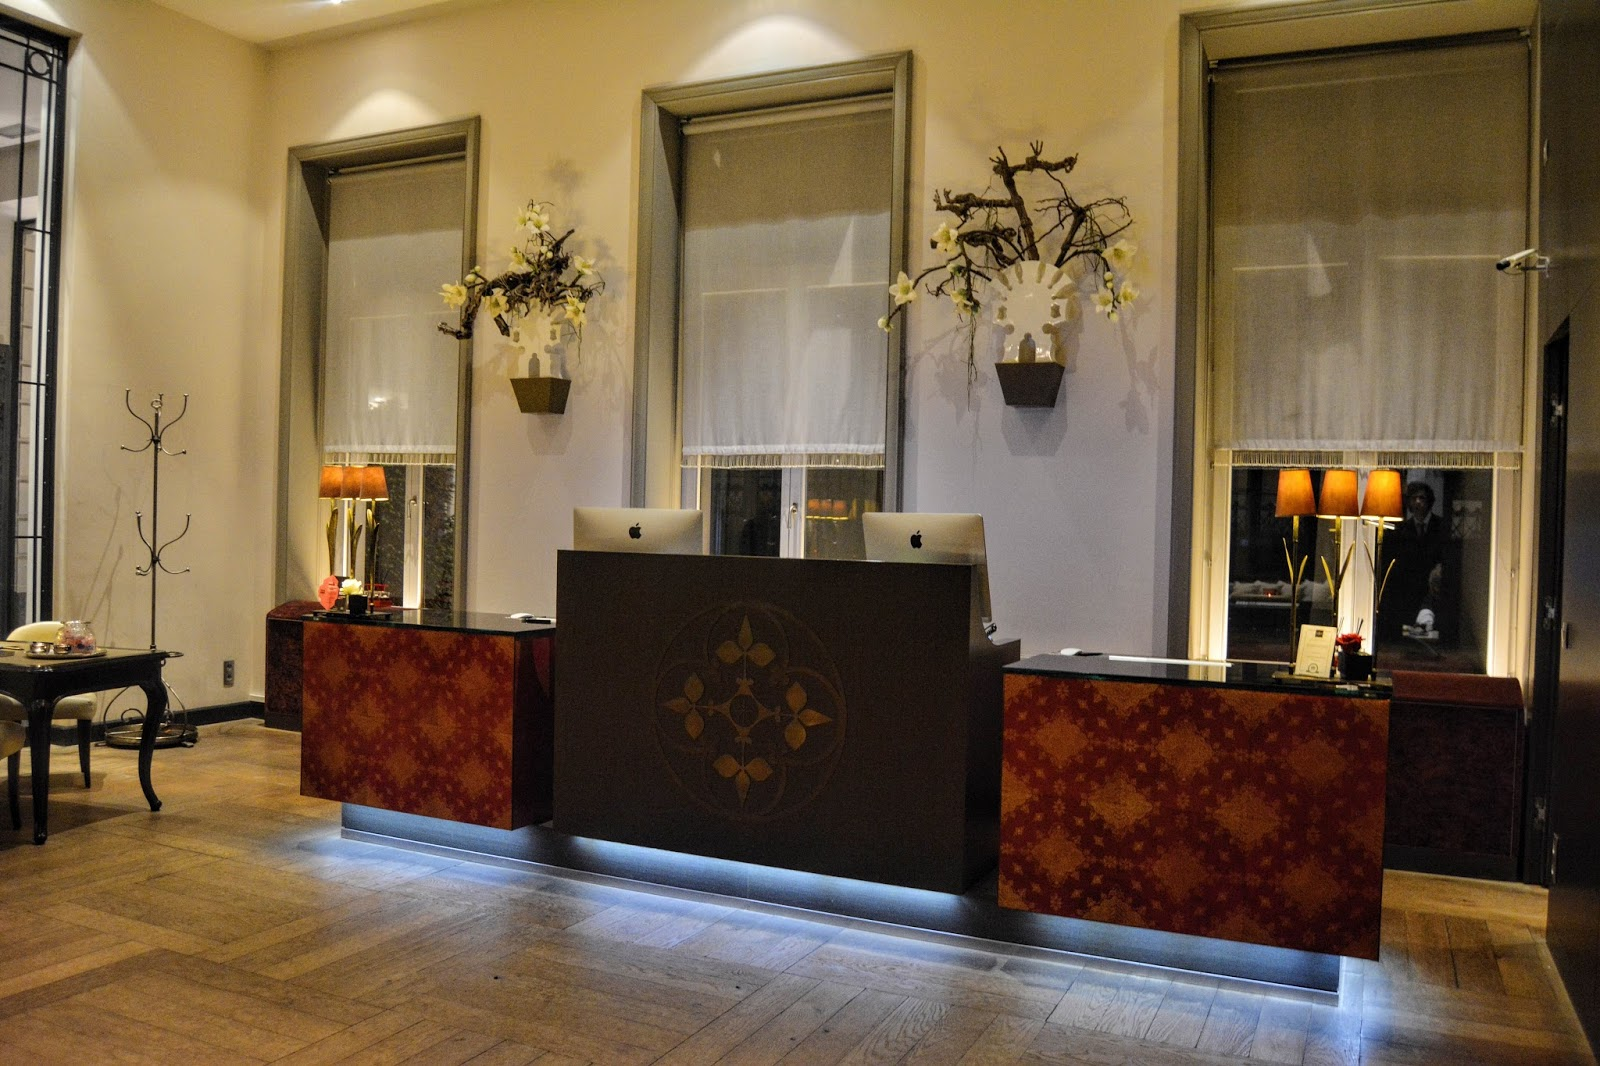 Dominican Hotel Brussels